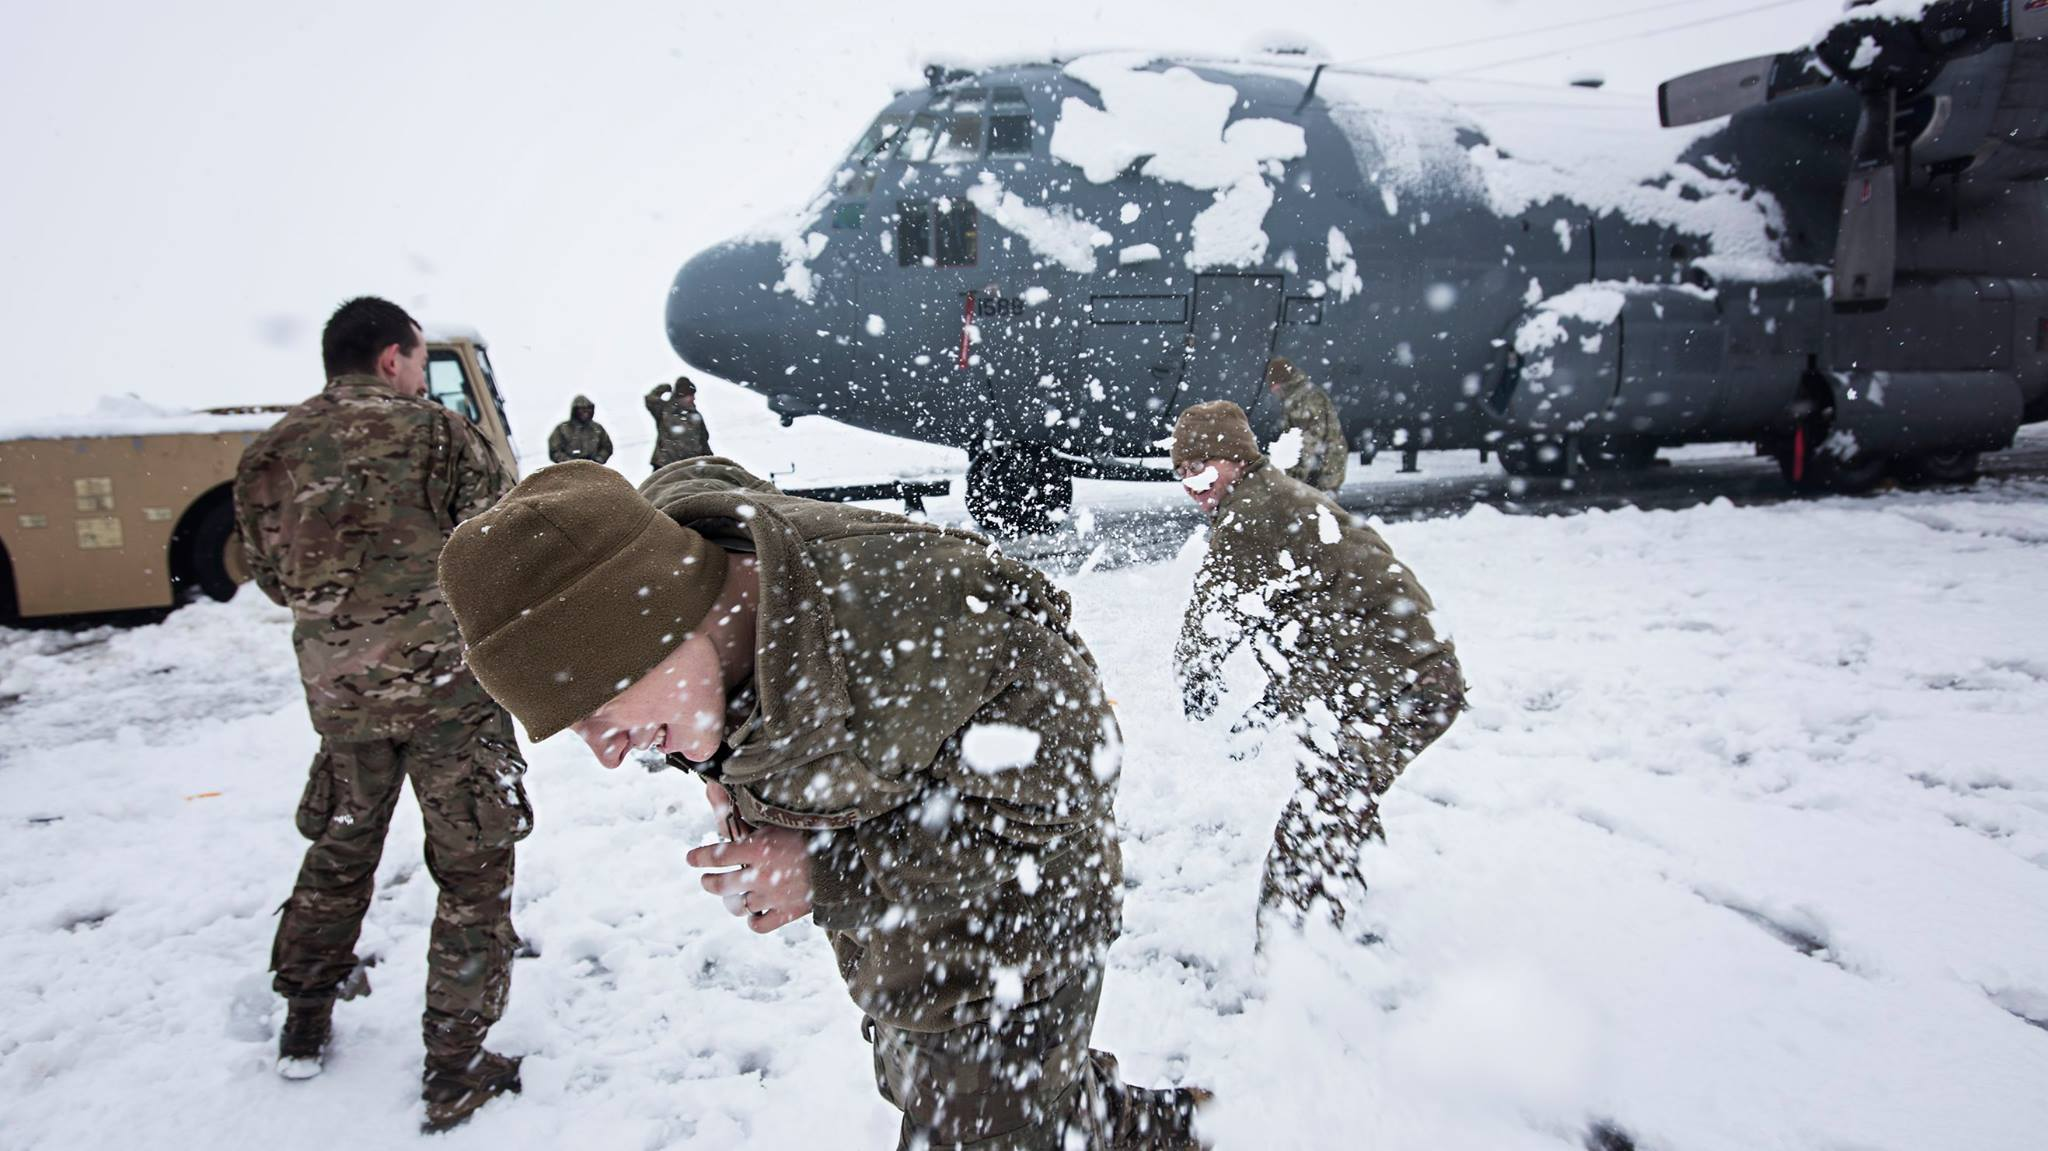 Photos Airmen Play In The Snow At Bagram Airfield In